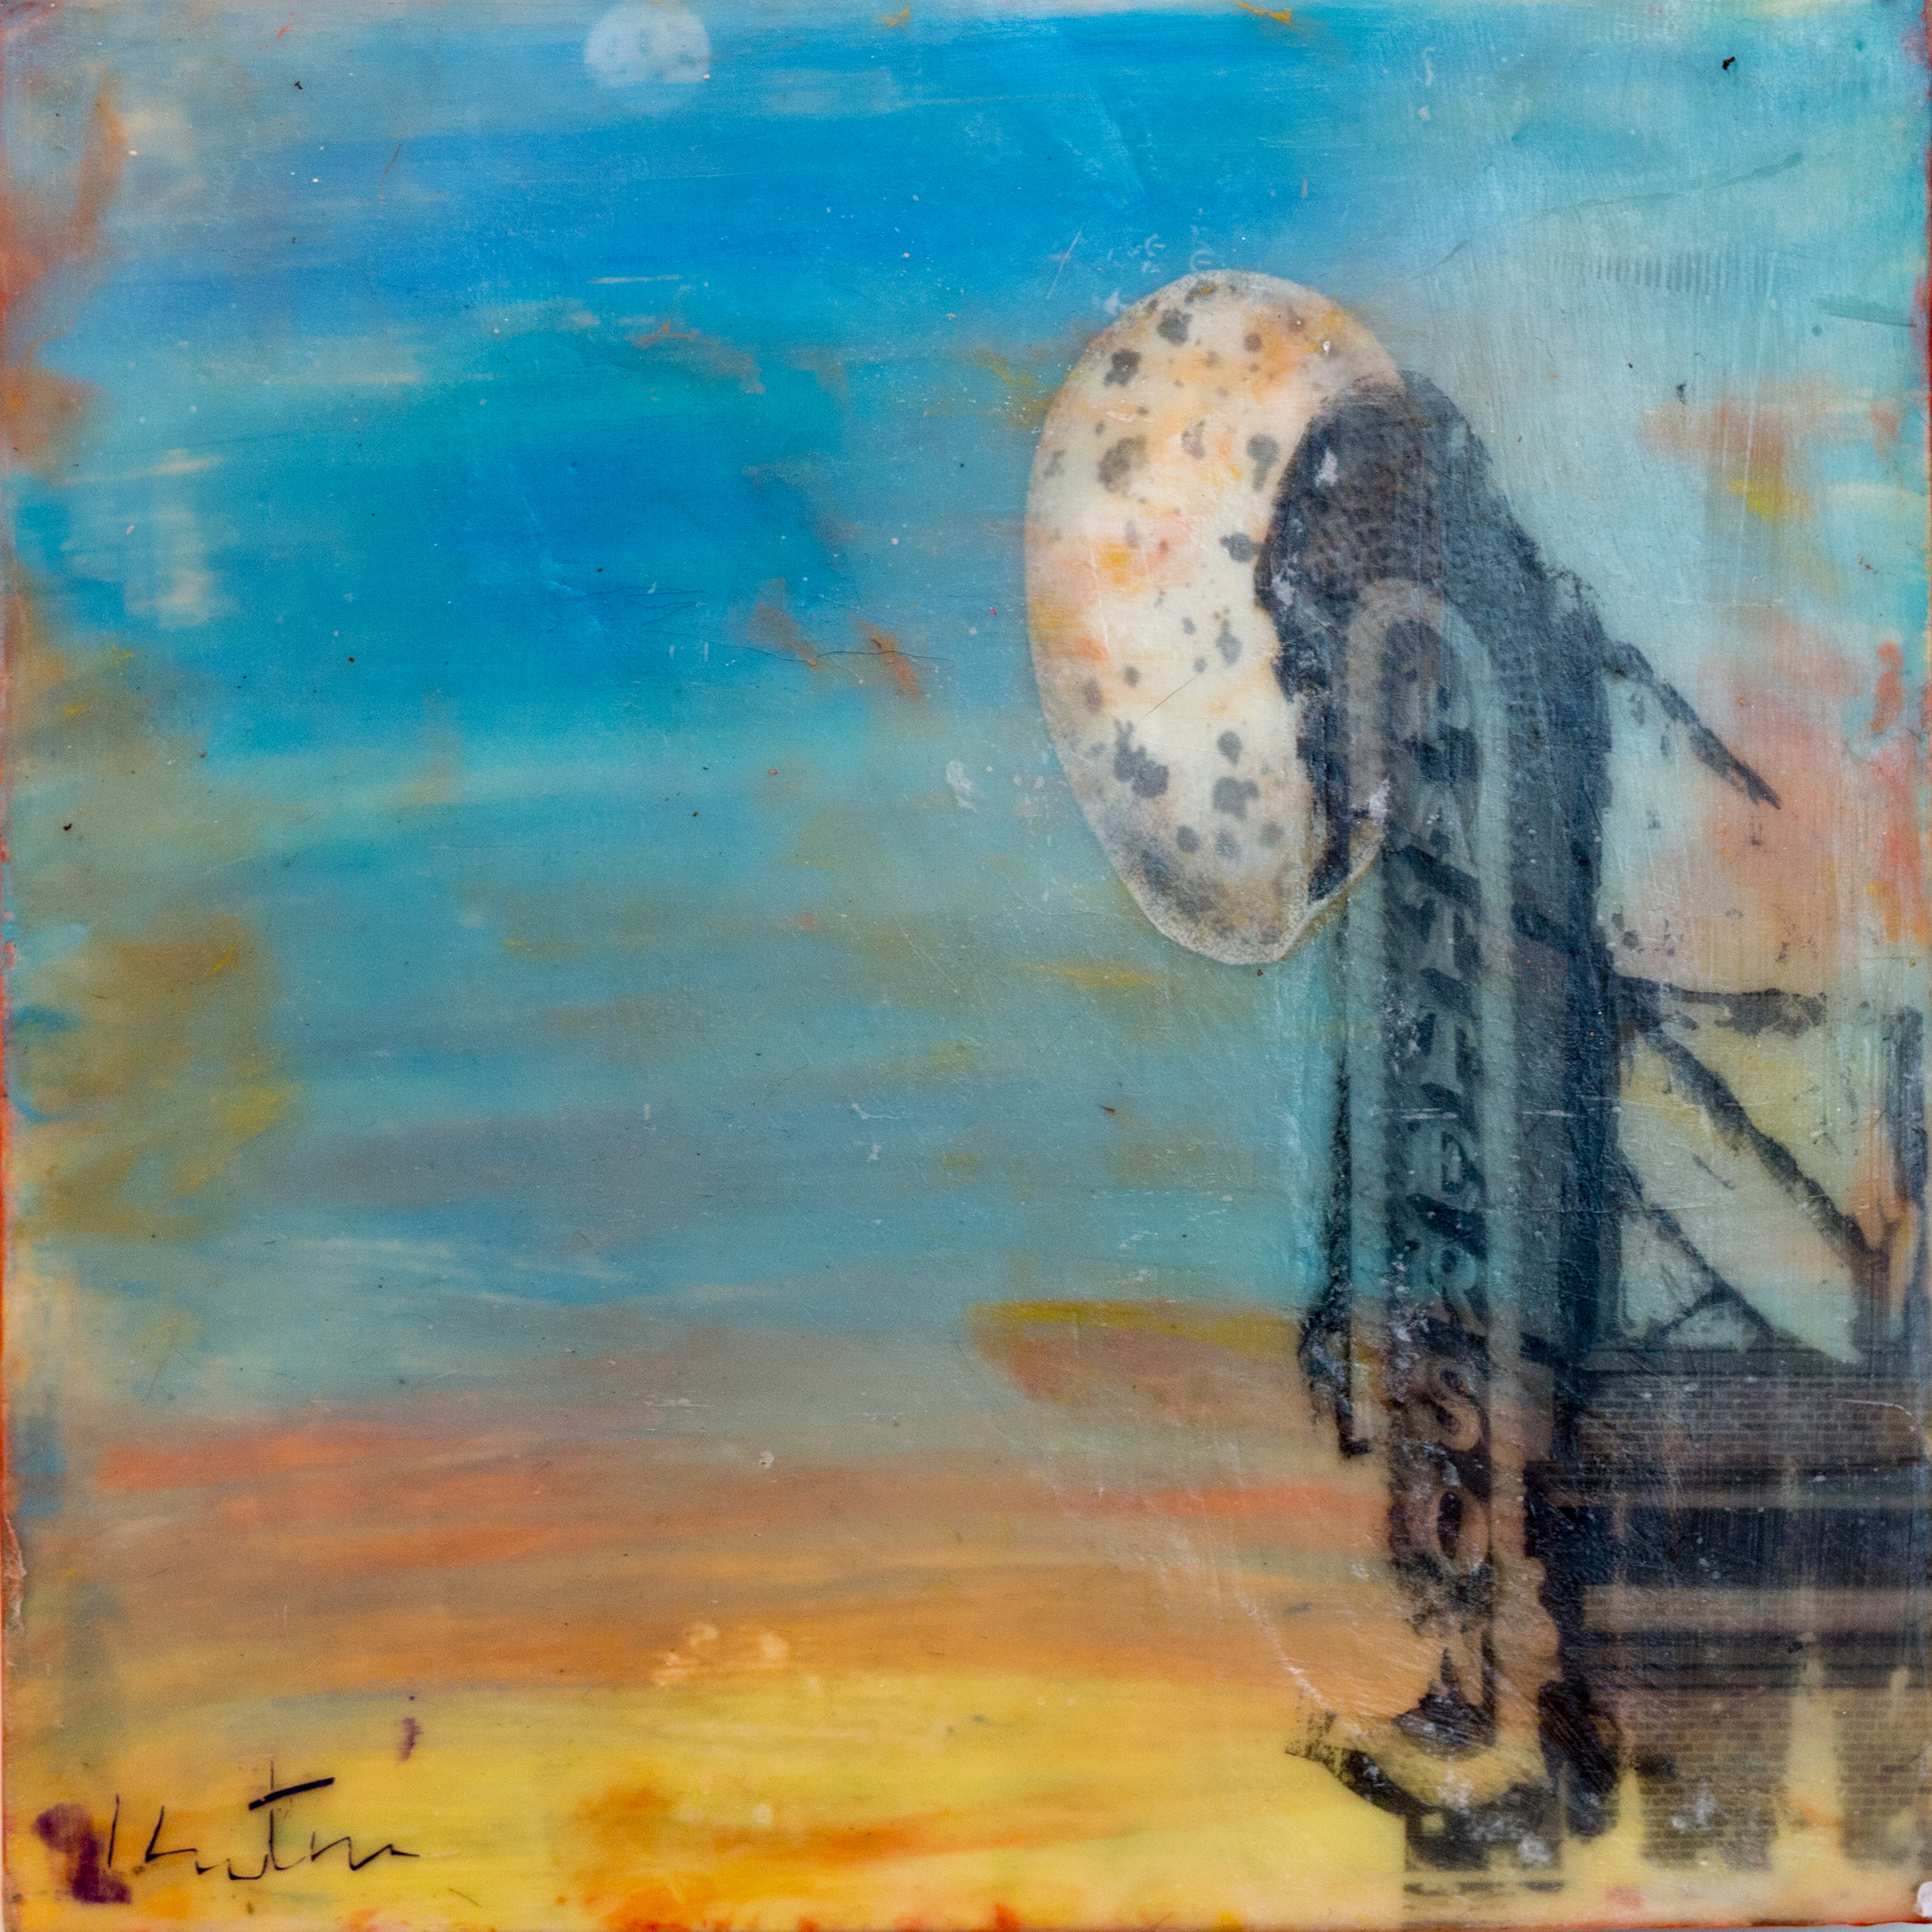 encaustic, creative alliance, moon, marquee, cityscape